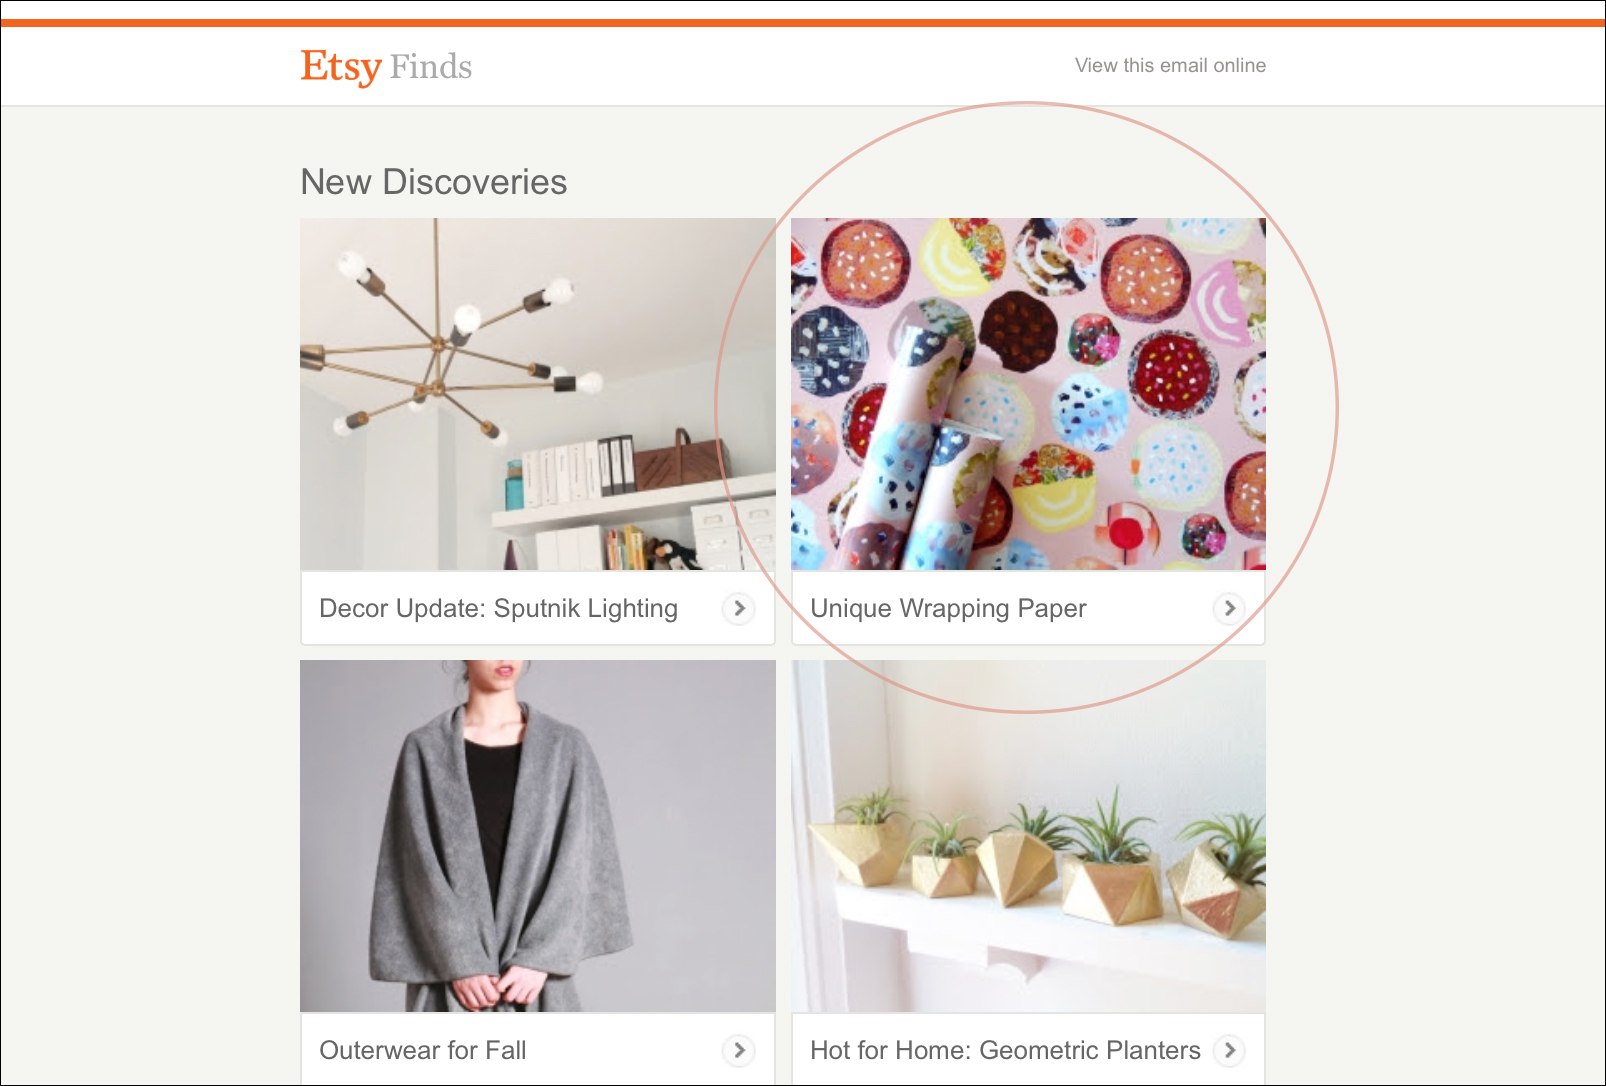 Lacey-Sombar-Curtis-Etsy-Discovery-2014-Email-web.jpg